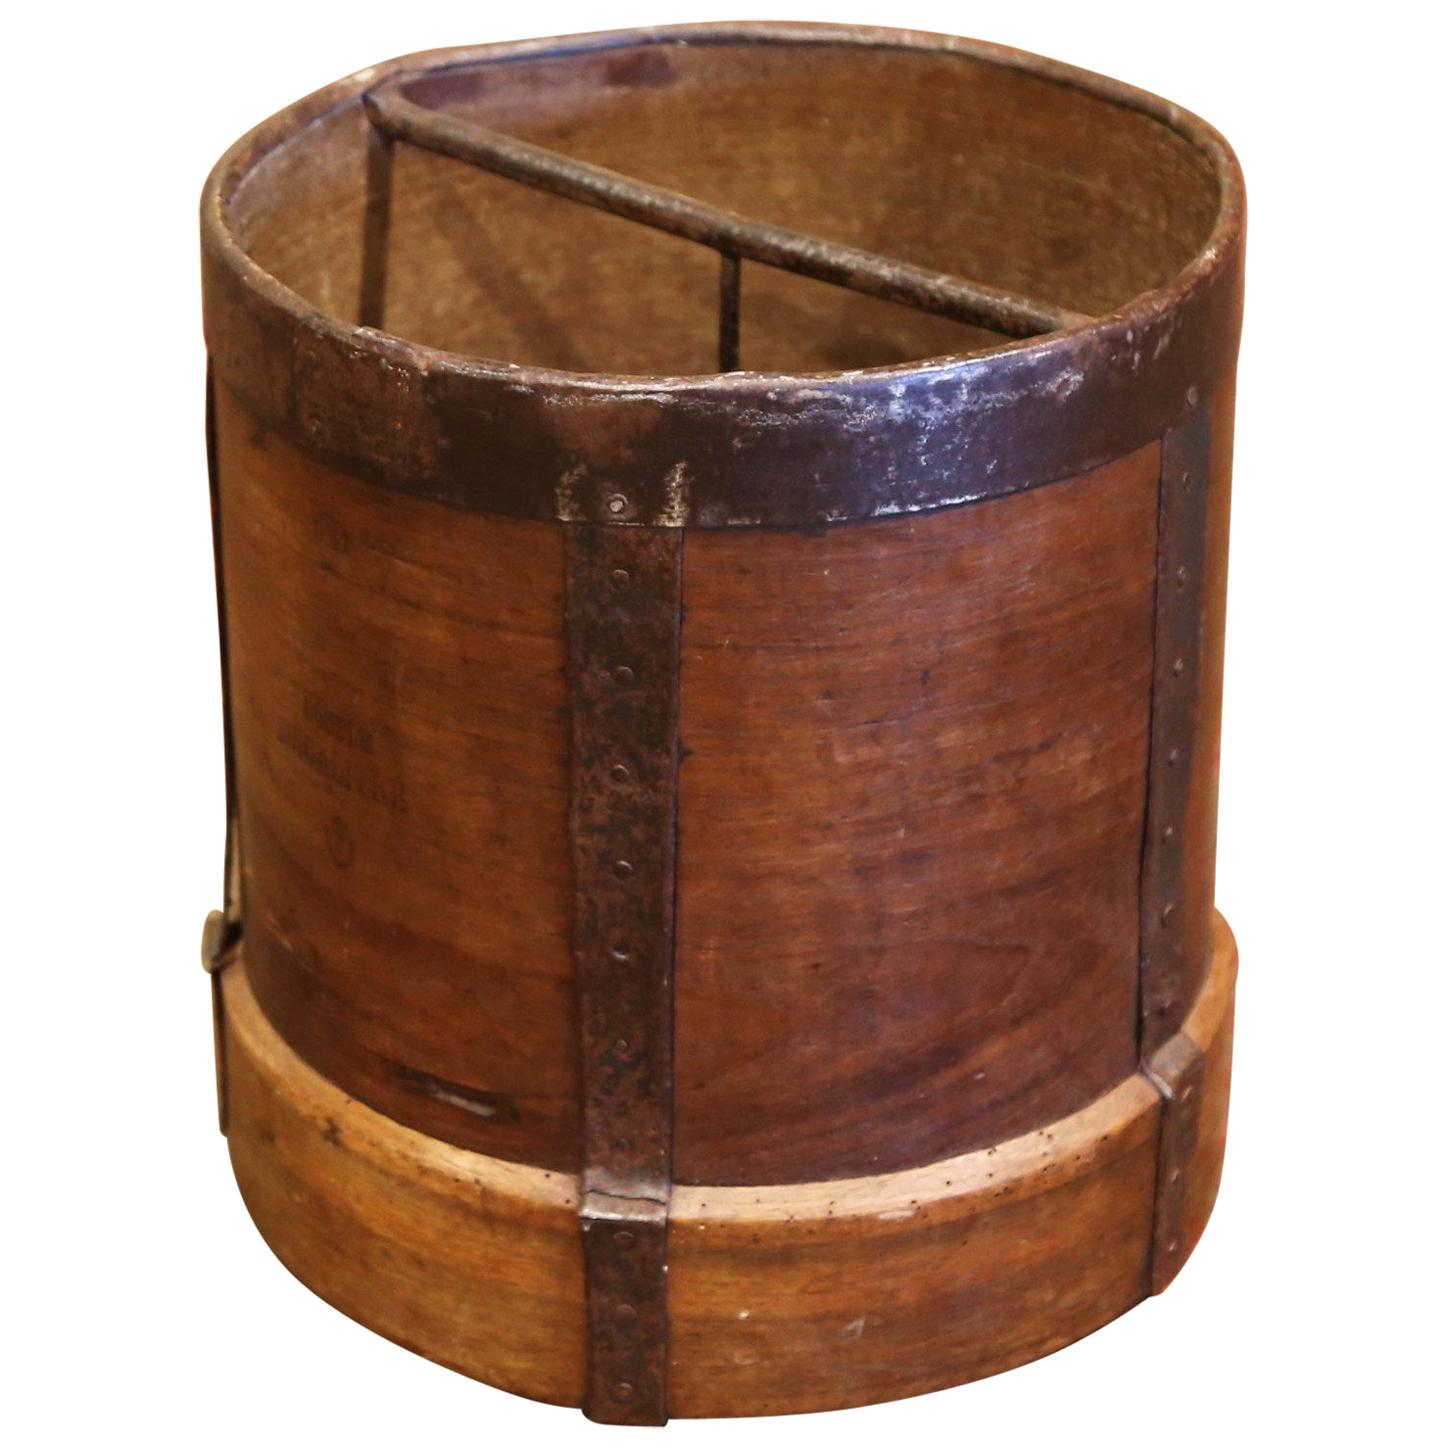 19th Century French Walnut and Iron Grain Measure Bucket or Waste Basket